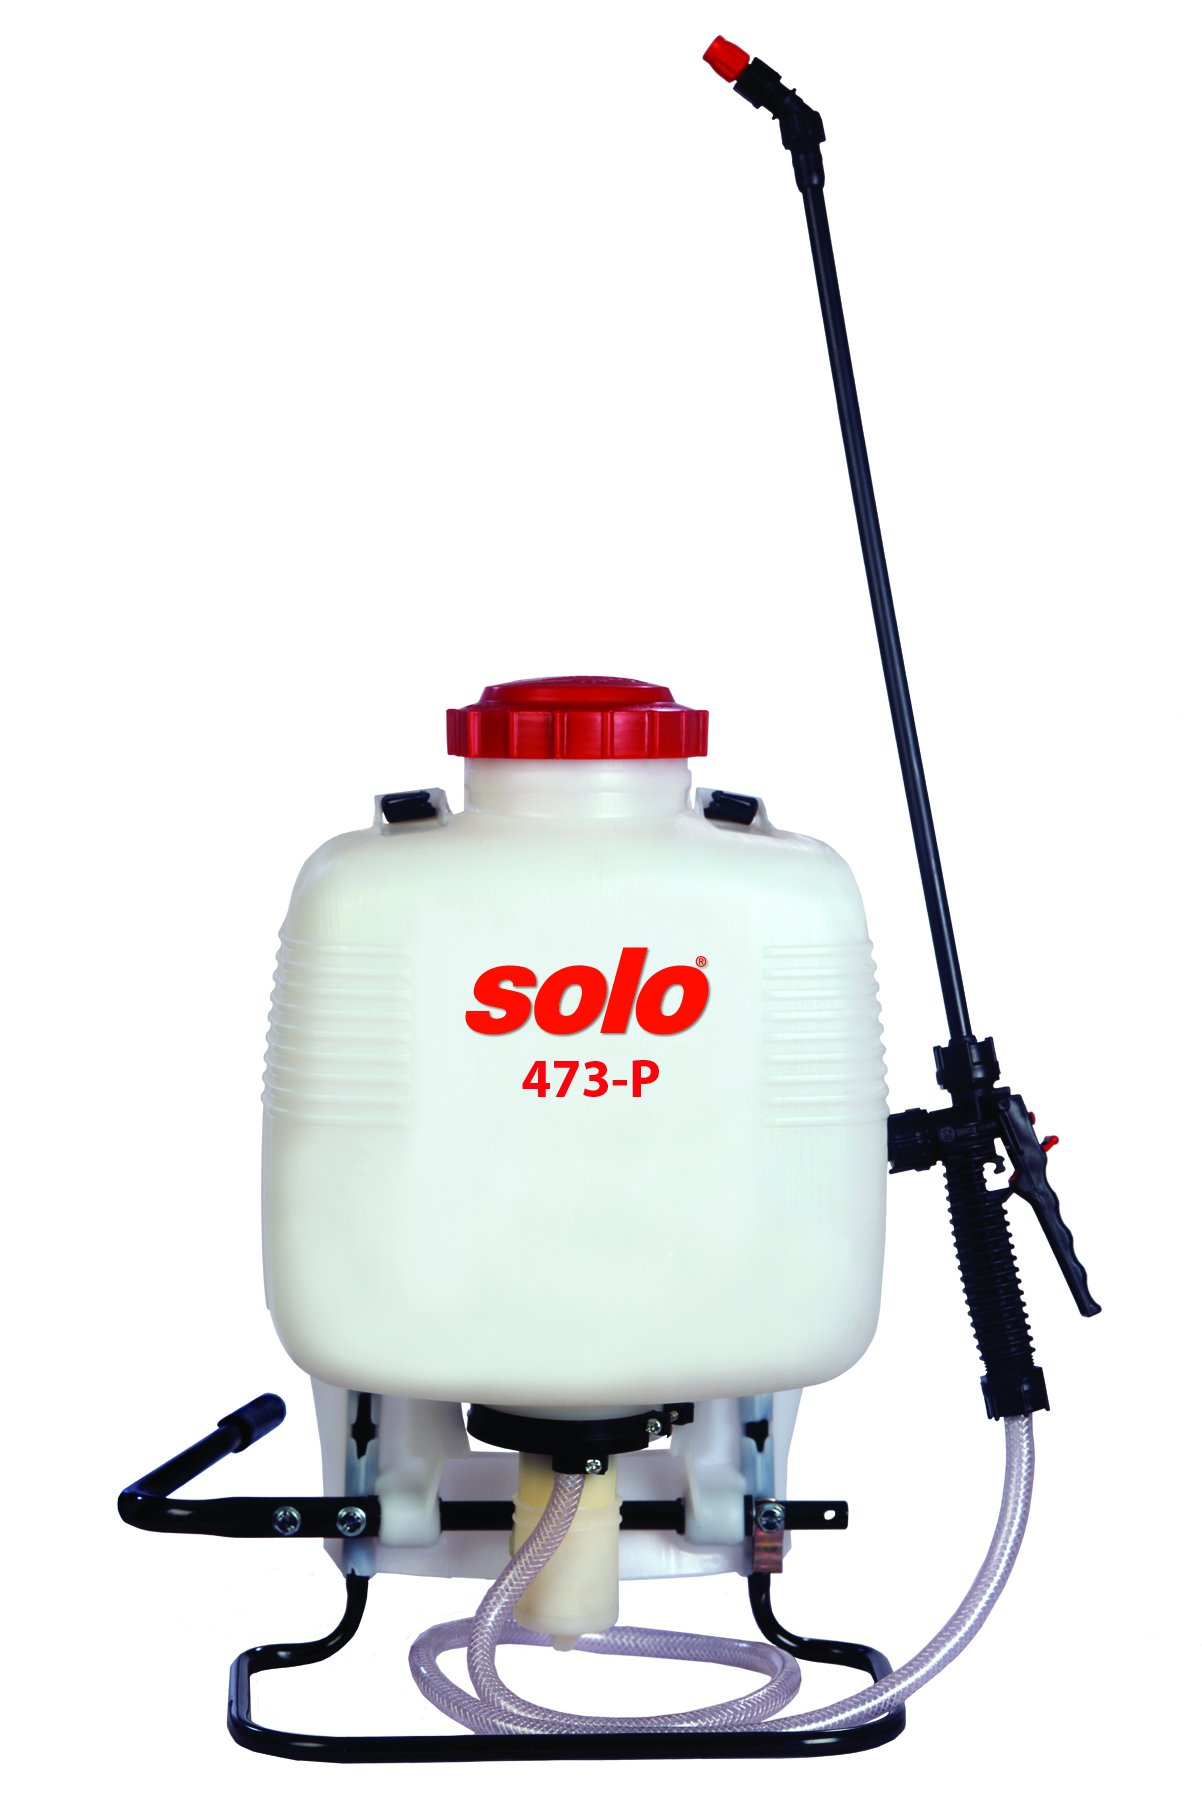 Solo 473-P 3-Gallon Professional Backpack Sprayer, Pressure Range up to 90 psi by Solo, Inc.